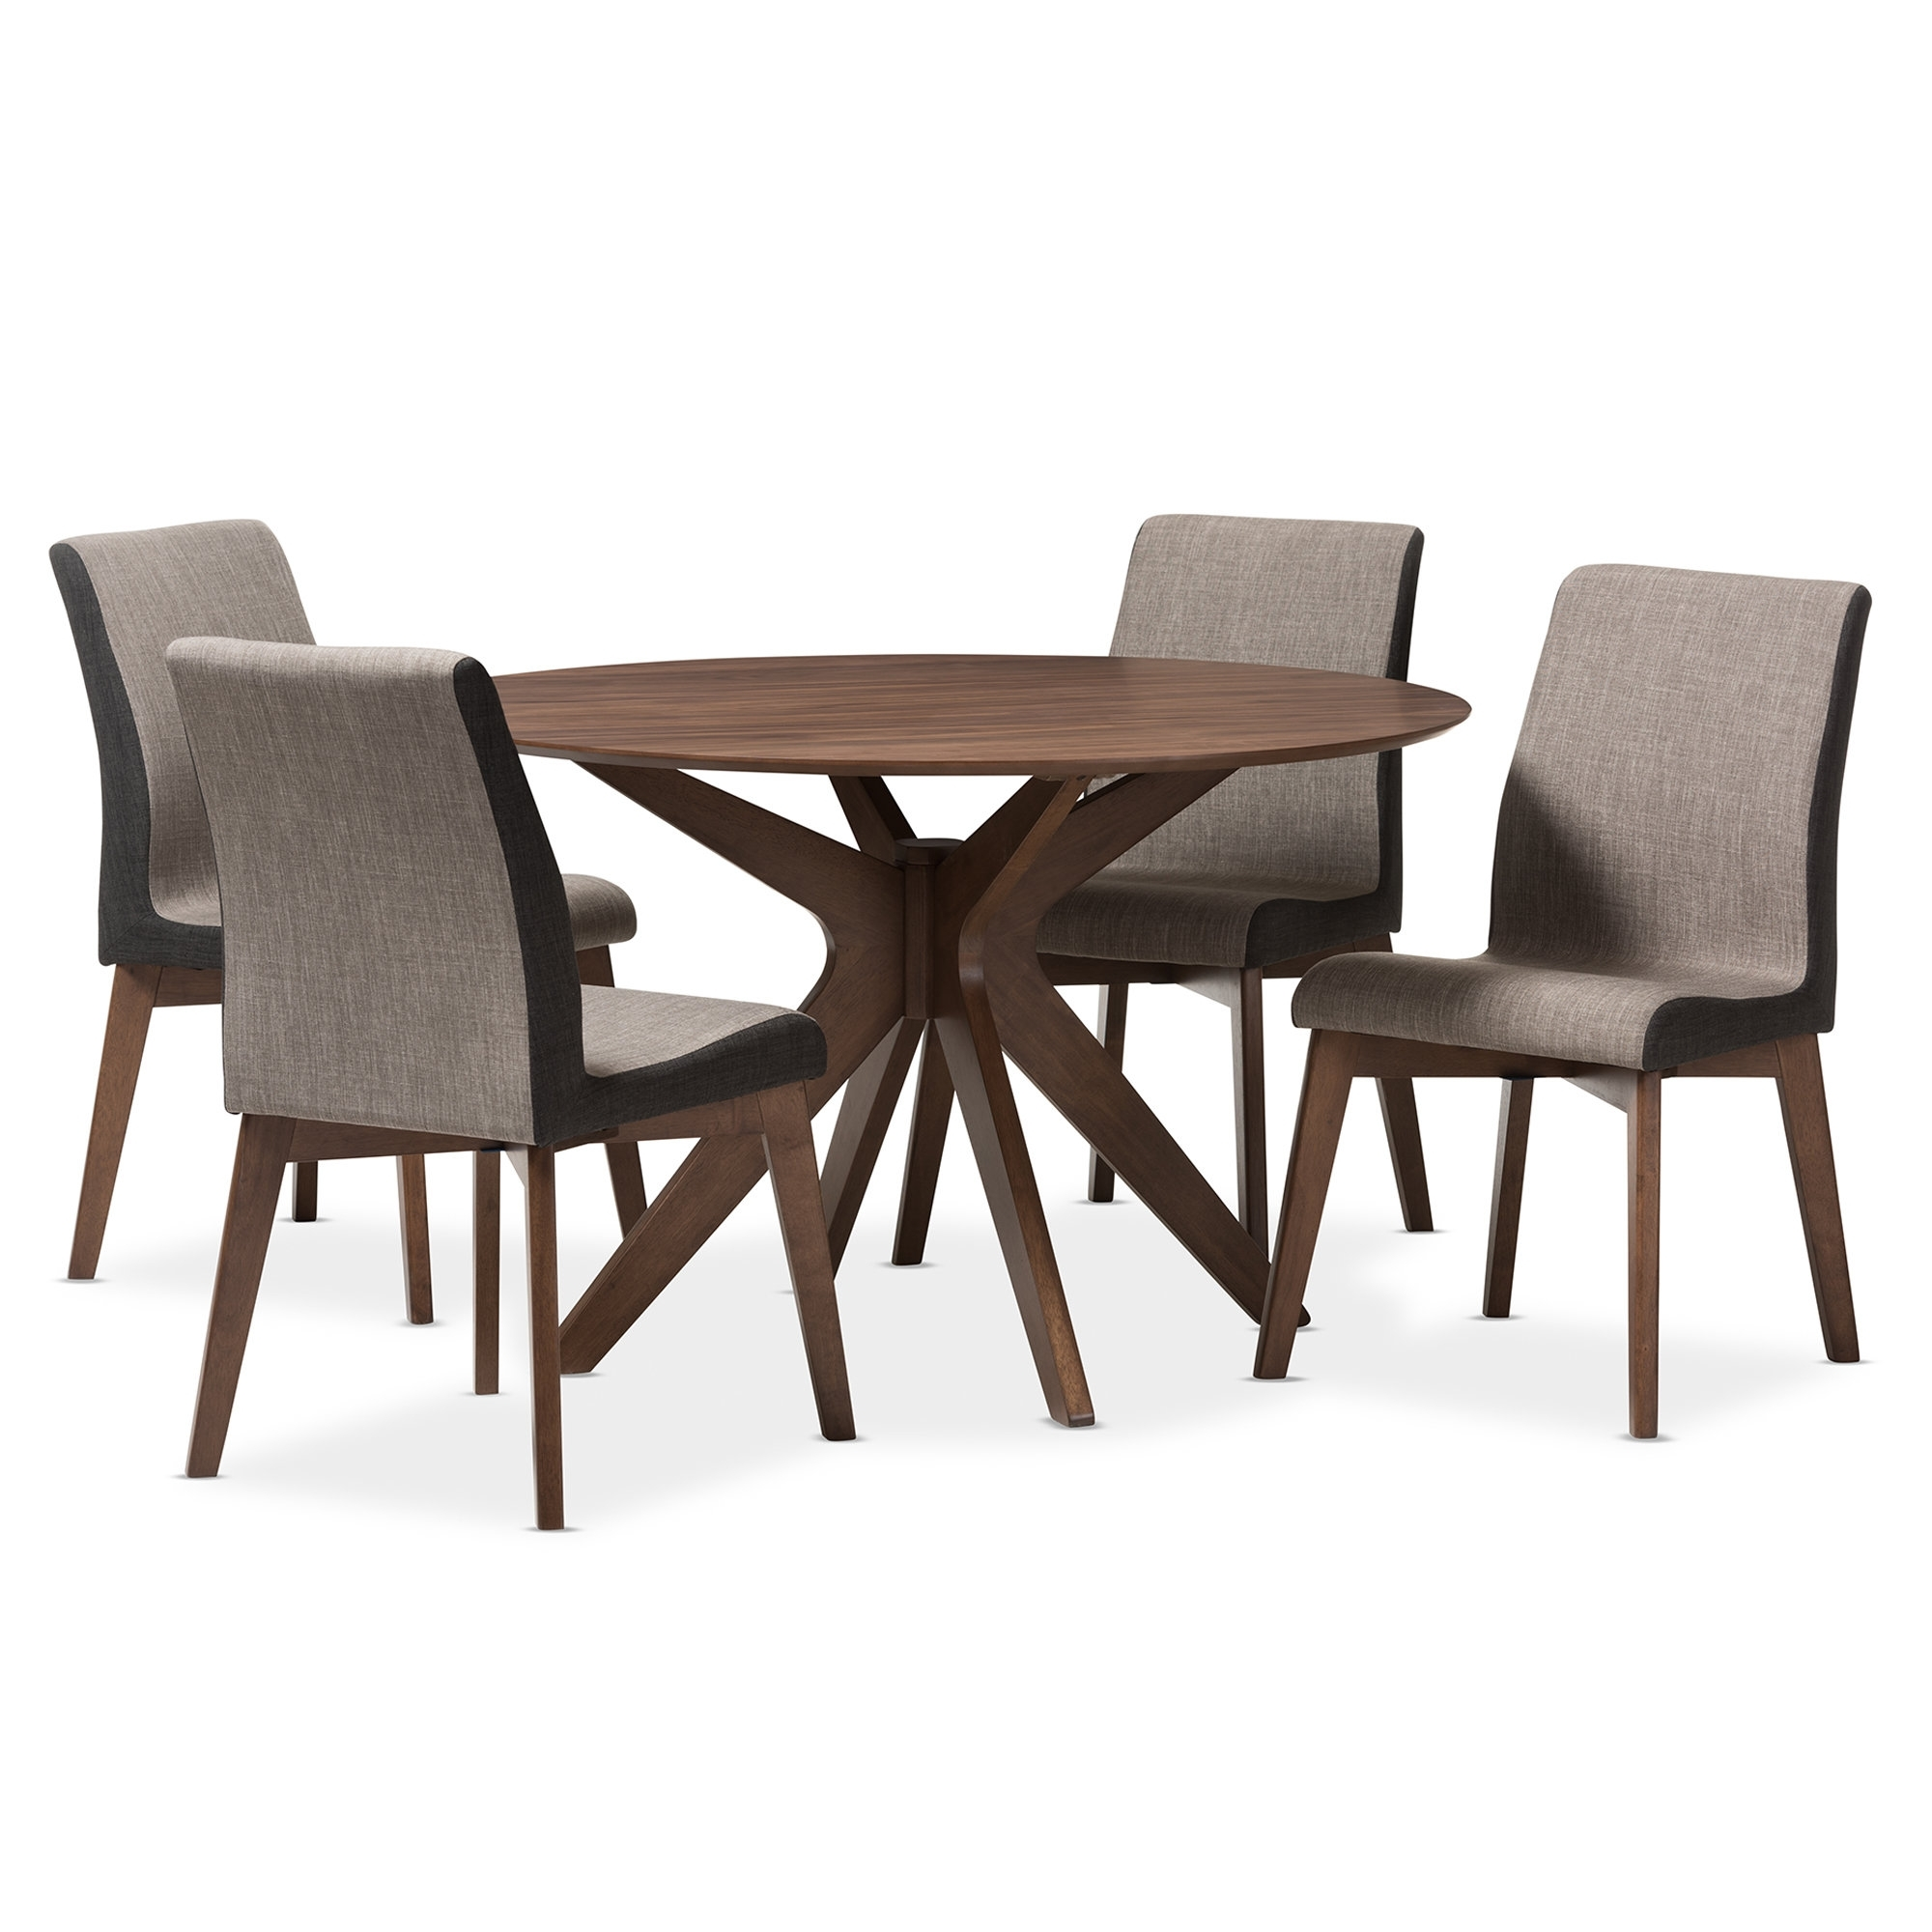 Wholesale Interiors Kimberly Mid Century Modern Wood Round 5 Piece With Regard To Most Popular Laurent 5 Piece Round Dining Sets With Wood Chairs (Image 20 of 20)